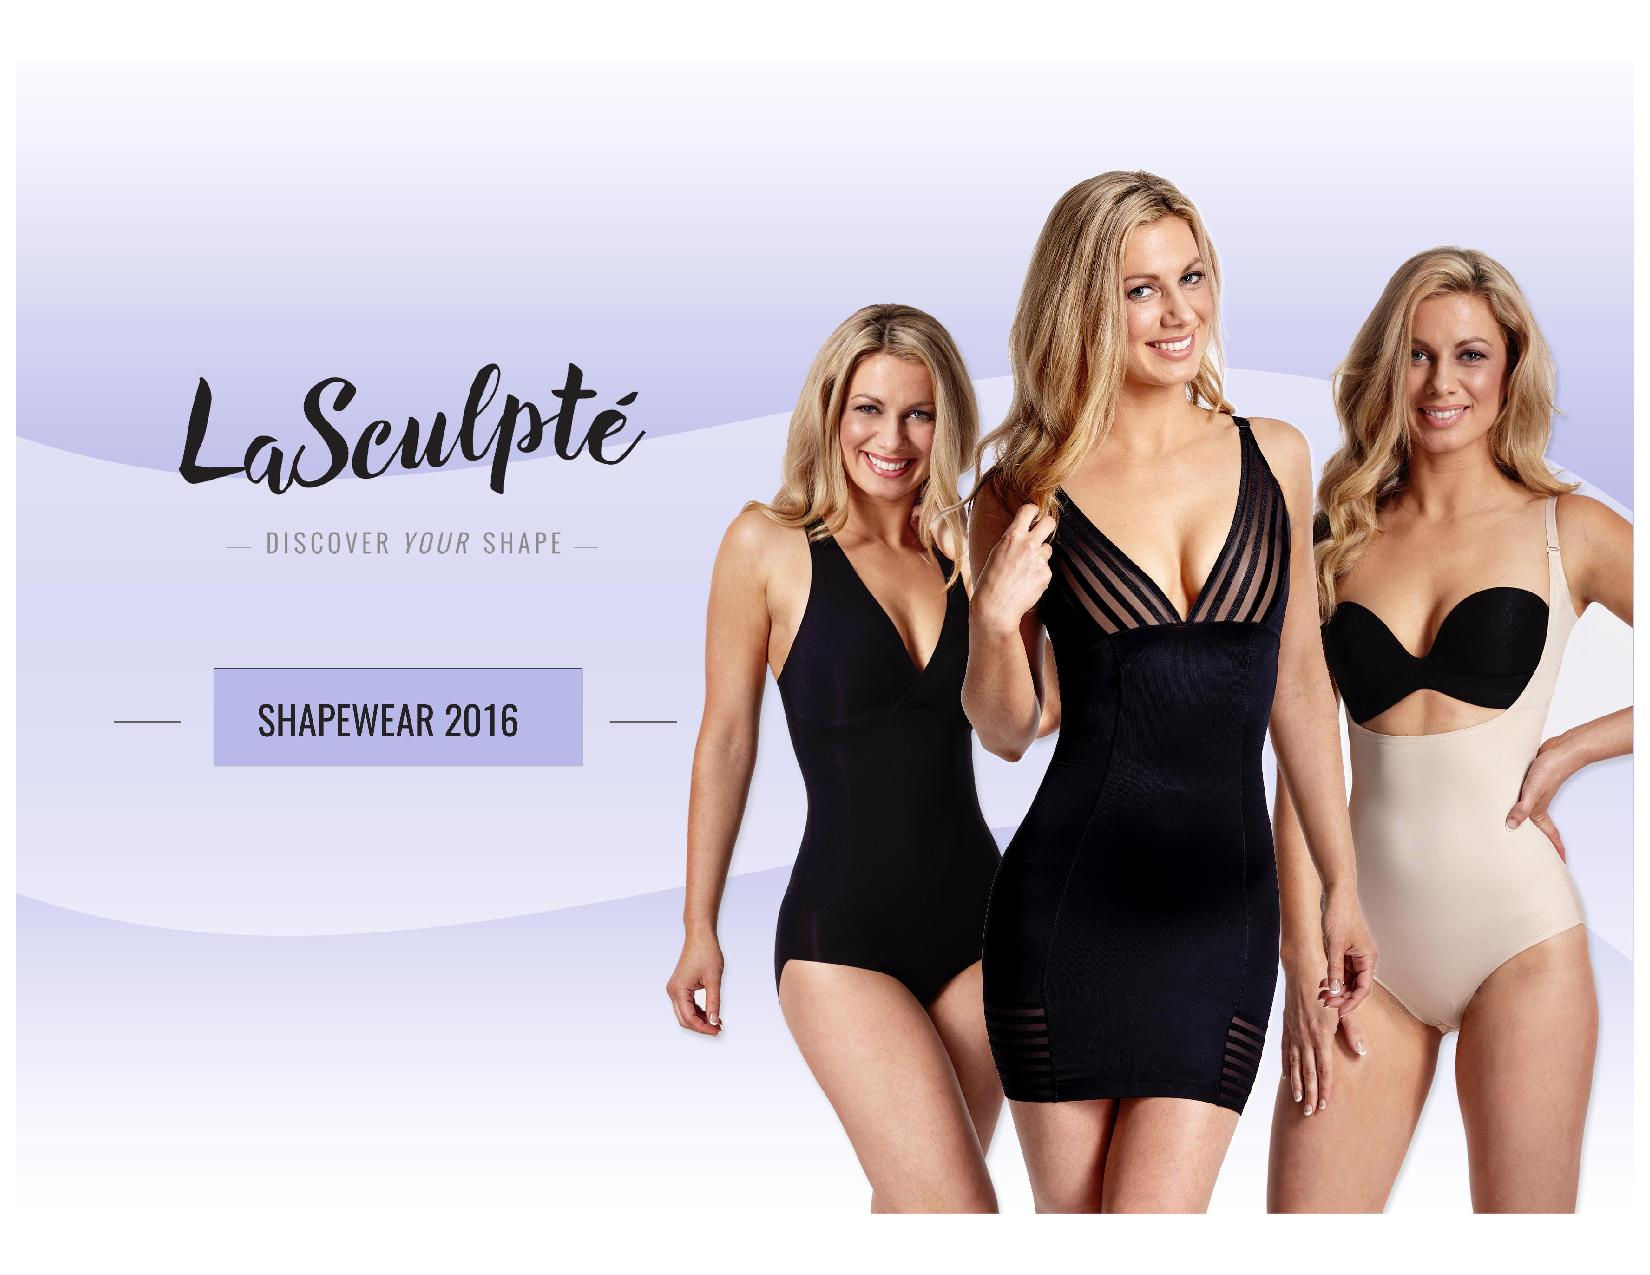 Lasculpte lookbook - Shapewear-page-001